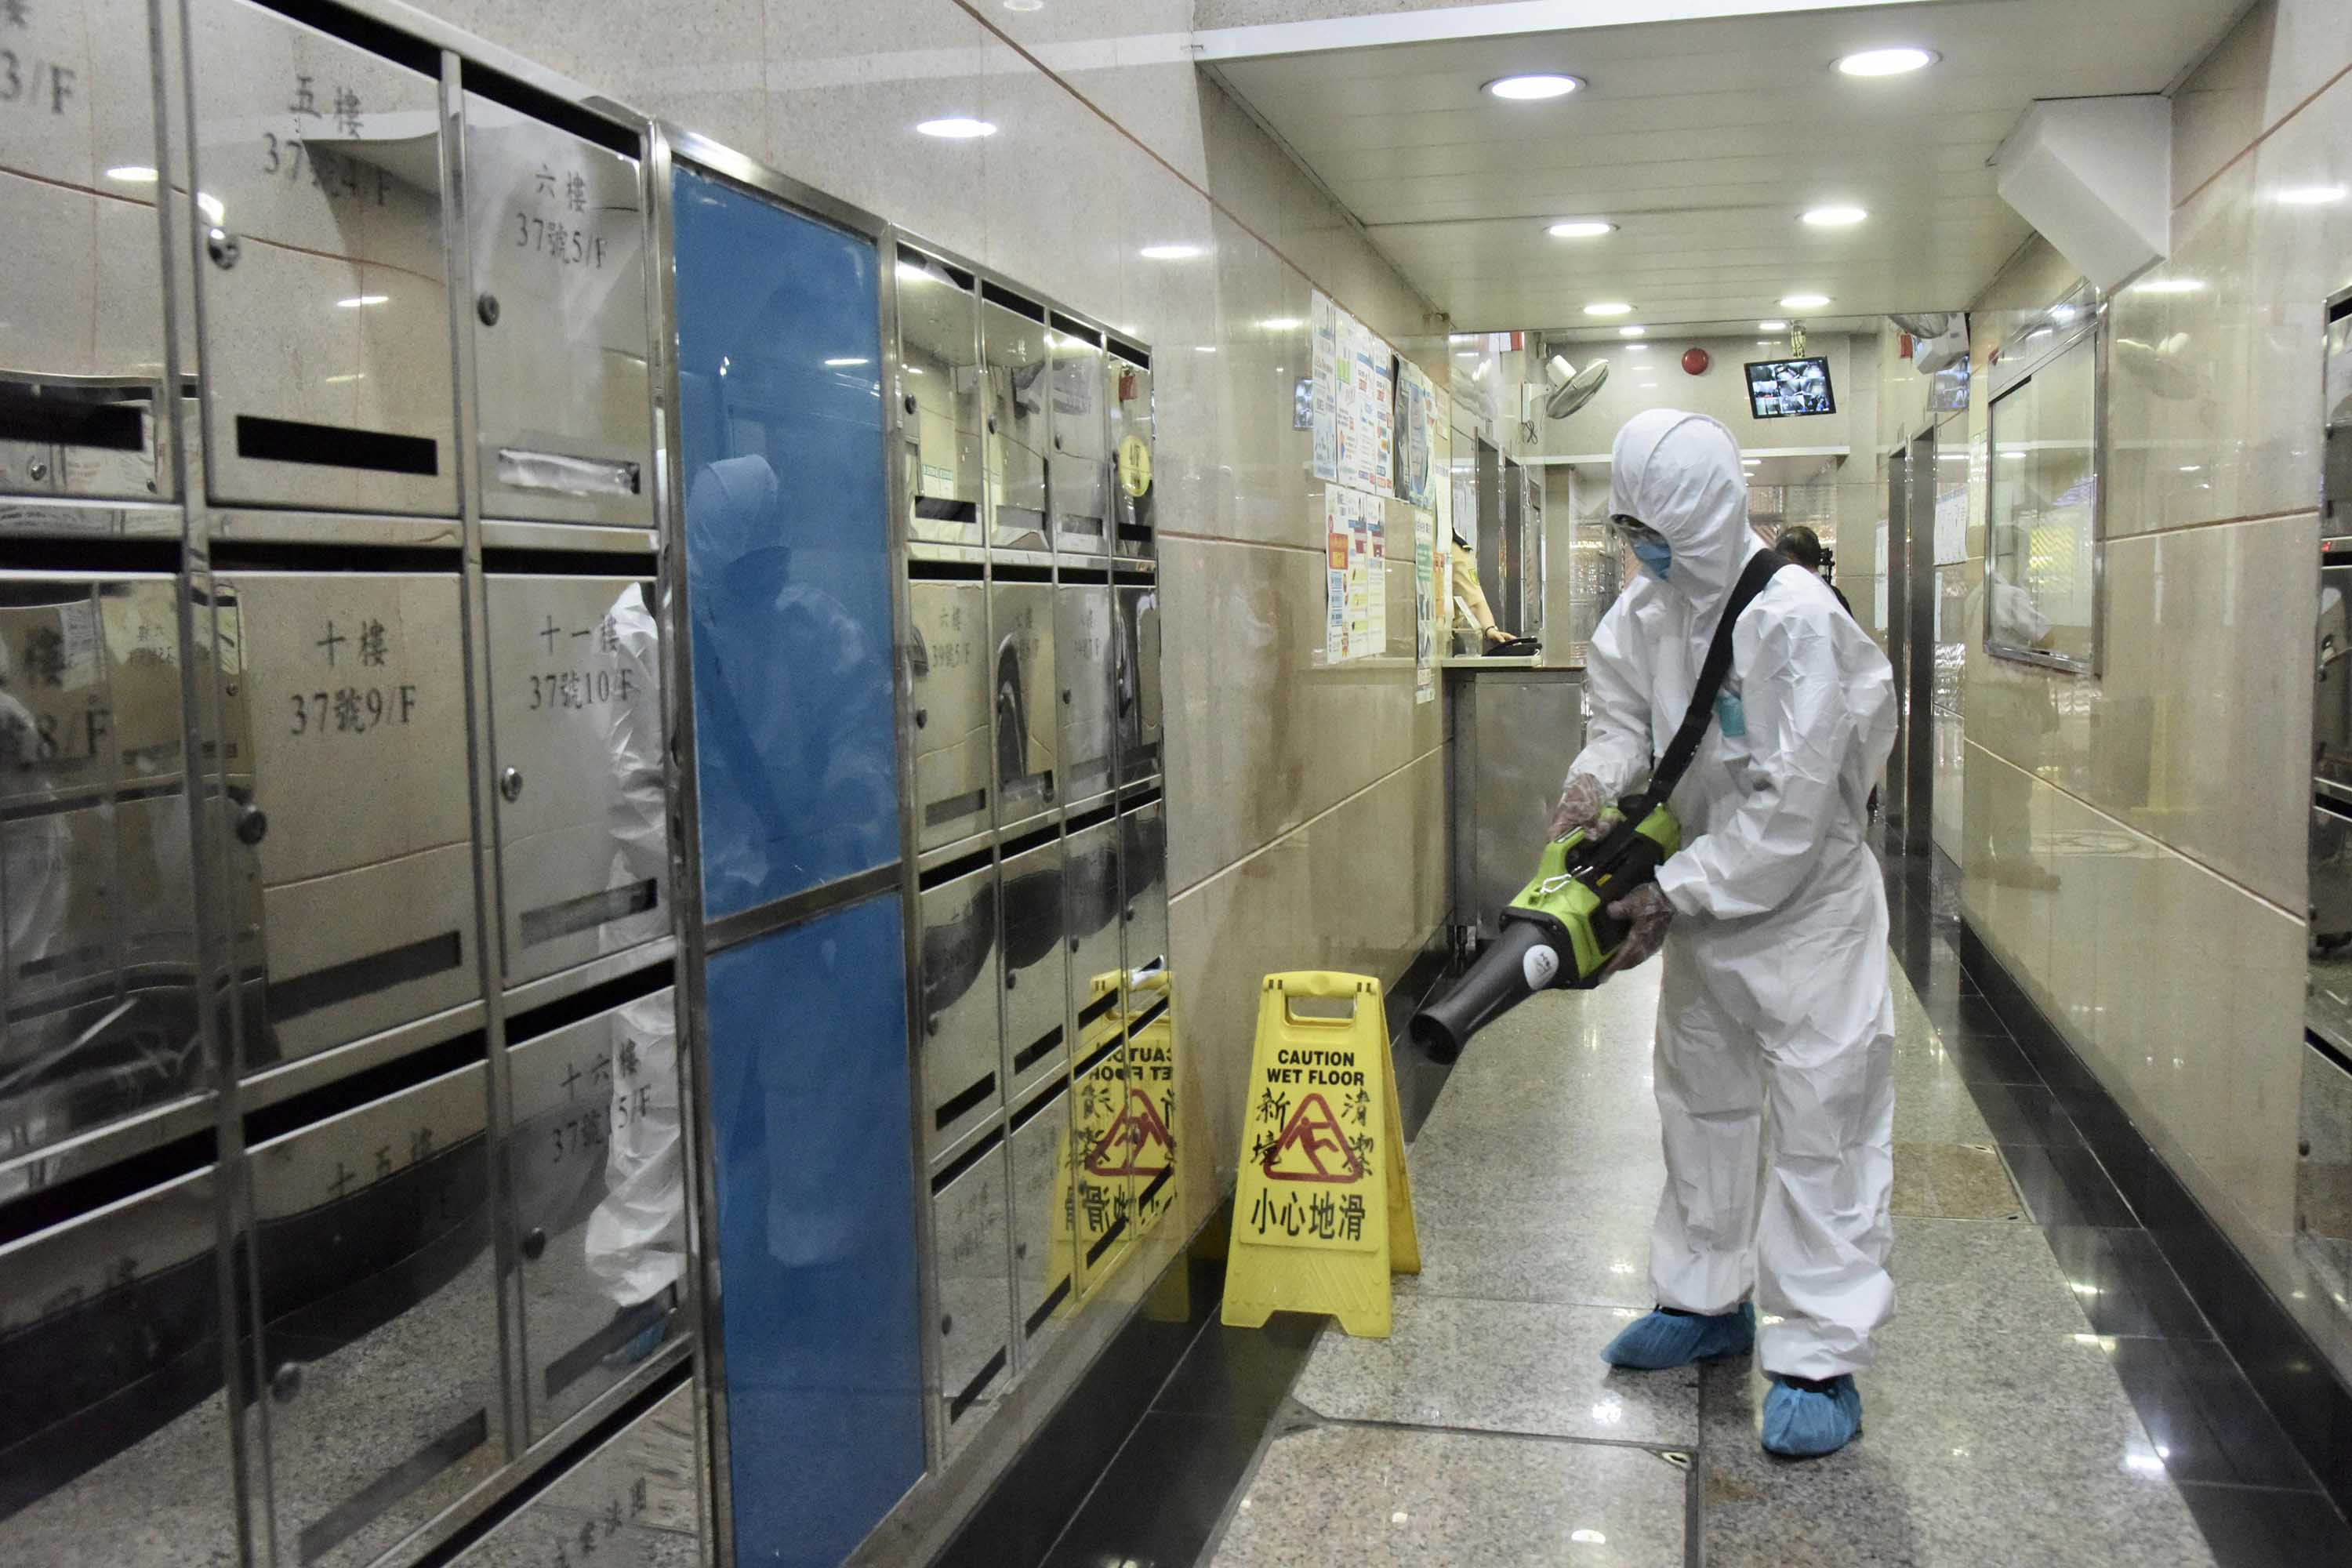 A worker sprays disinfectant at a residential block in Hong Kong on July 8.